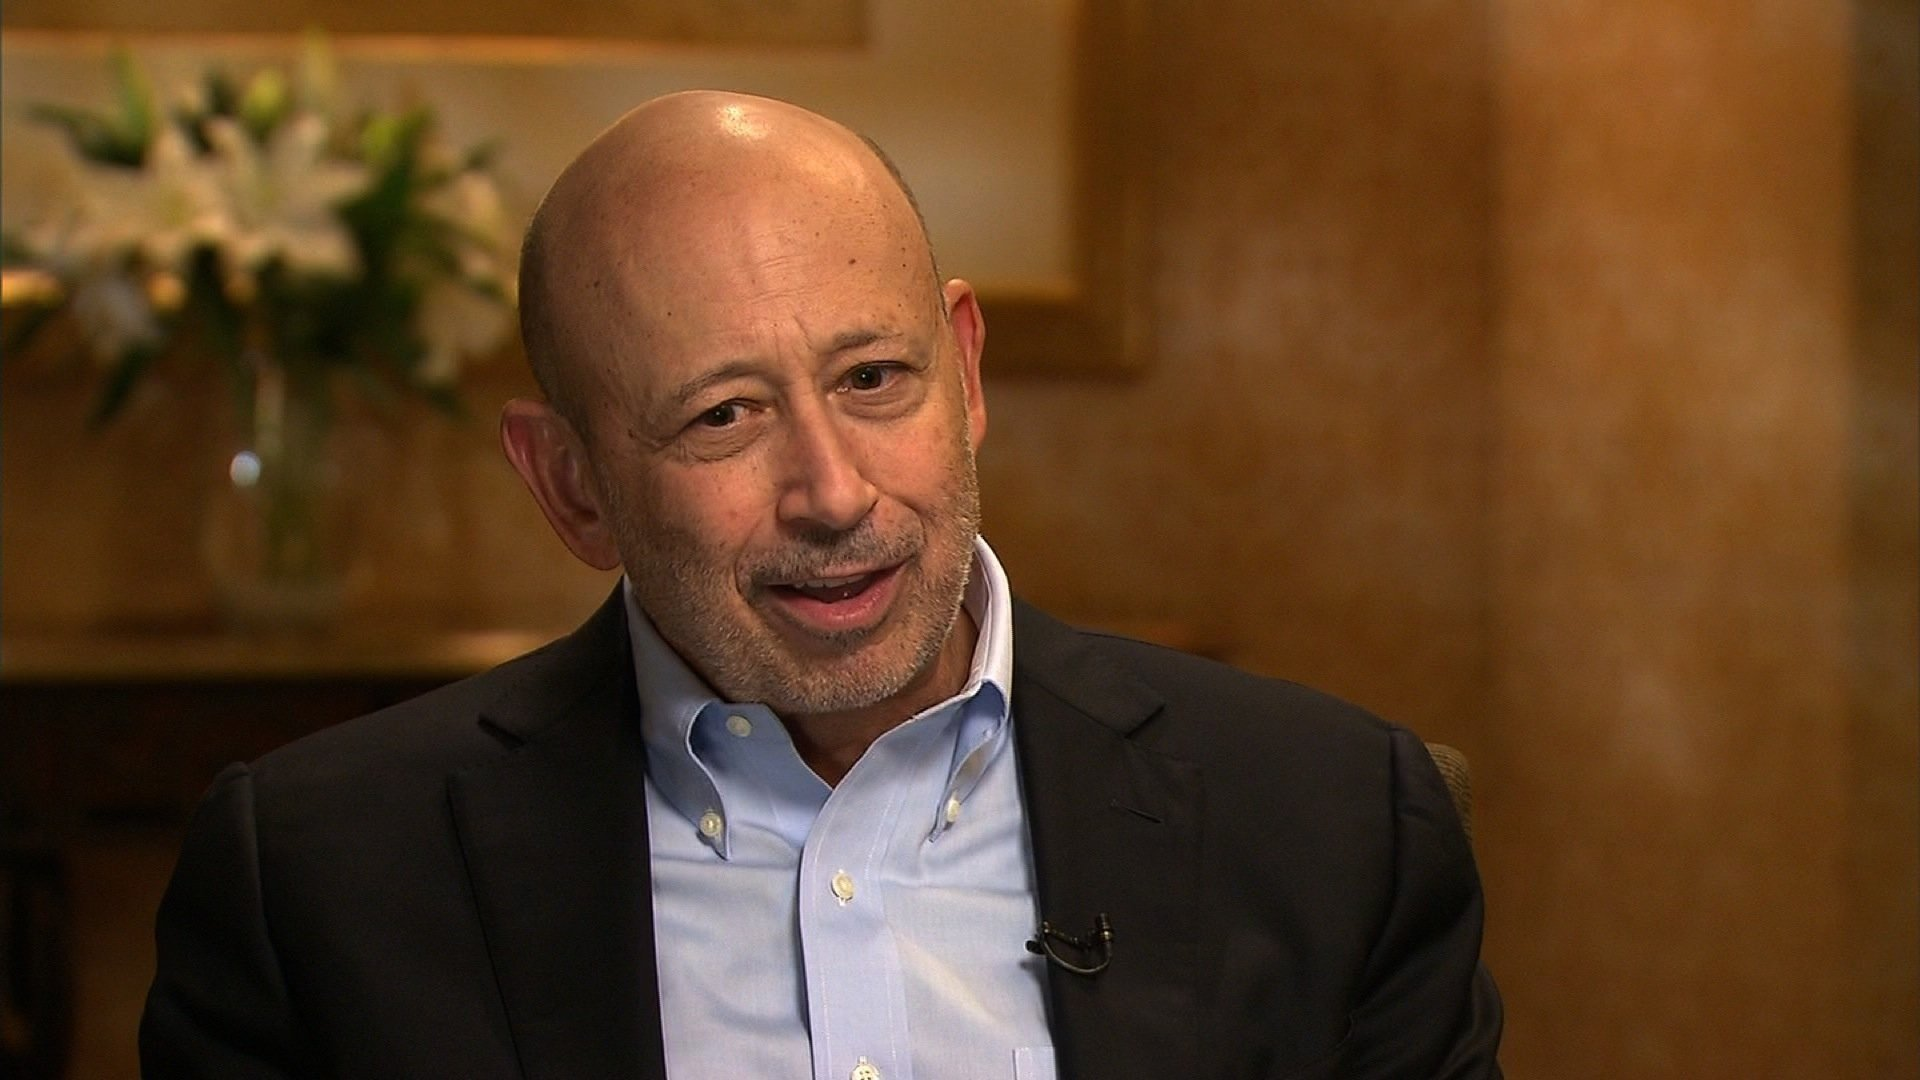 Goldman Sachs CEO Blankfein to retire by year end